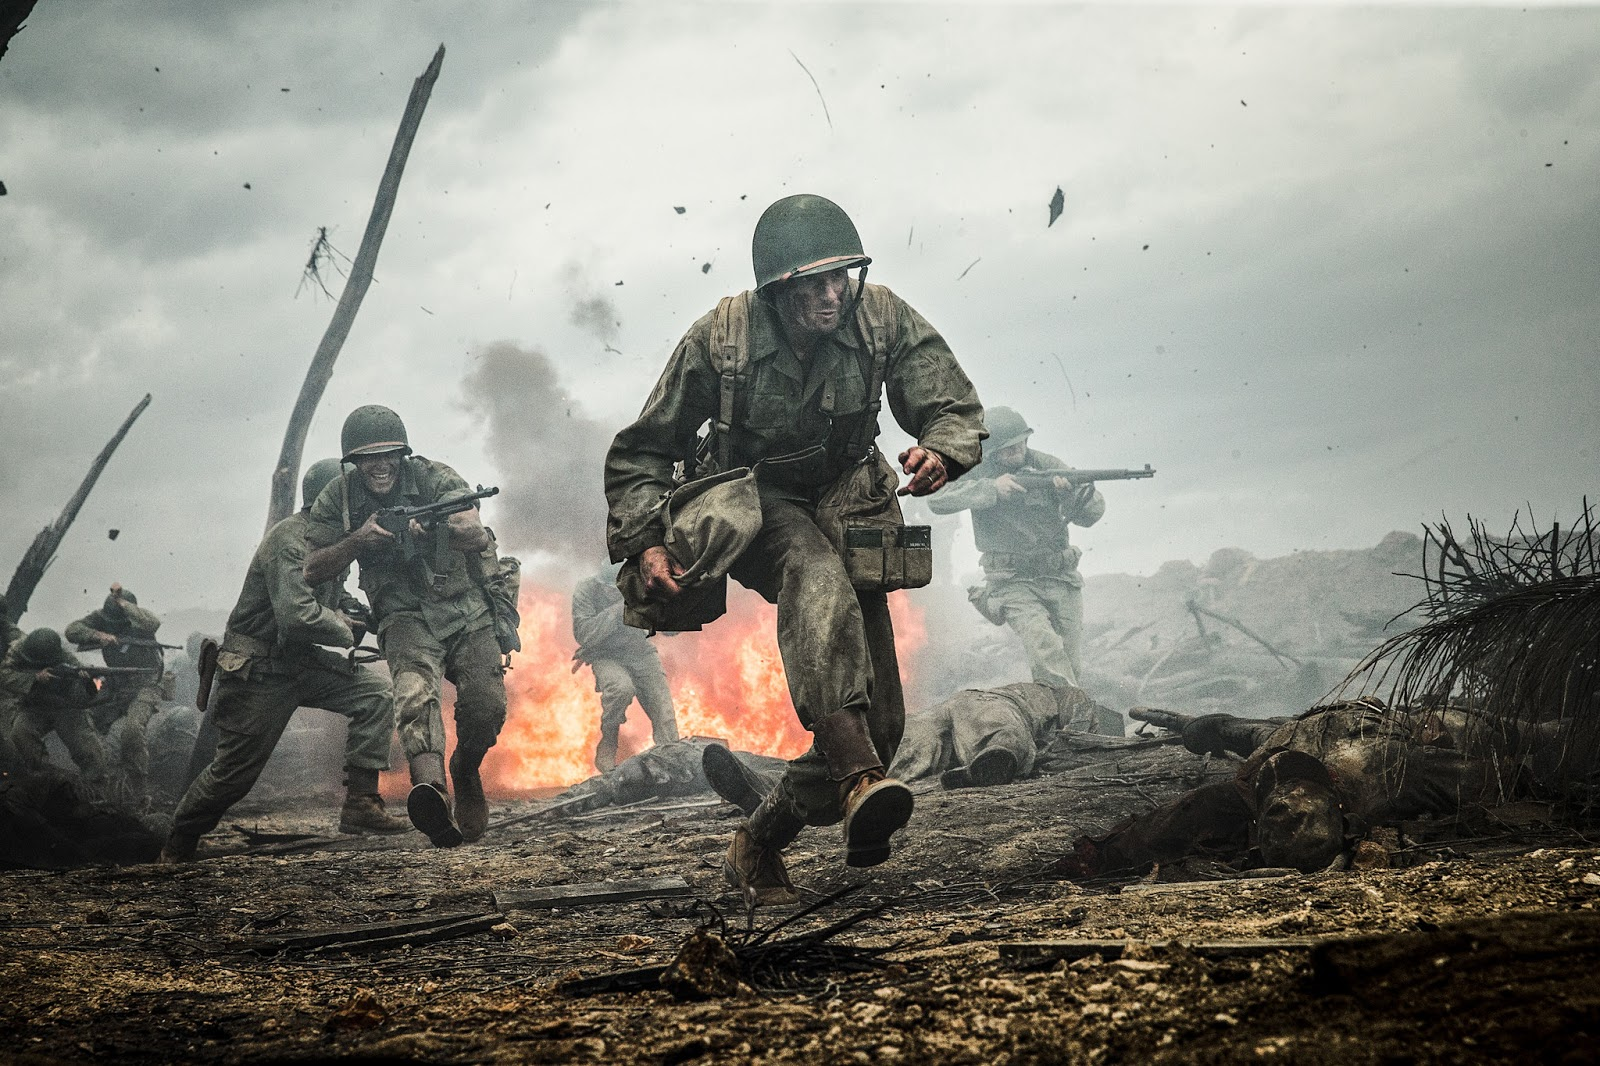 Screenplay, Hacksaw Ridge, 2016, Movie script - Official Website - BenjaminMadeira